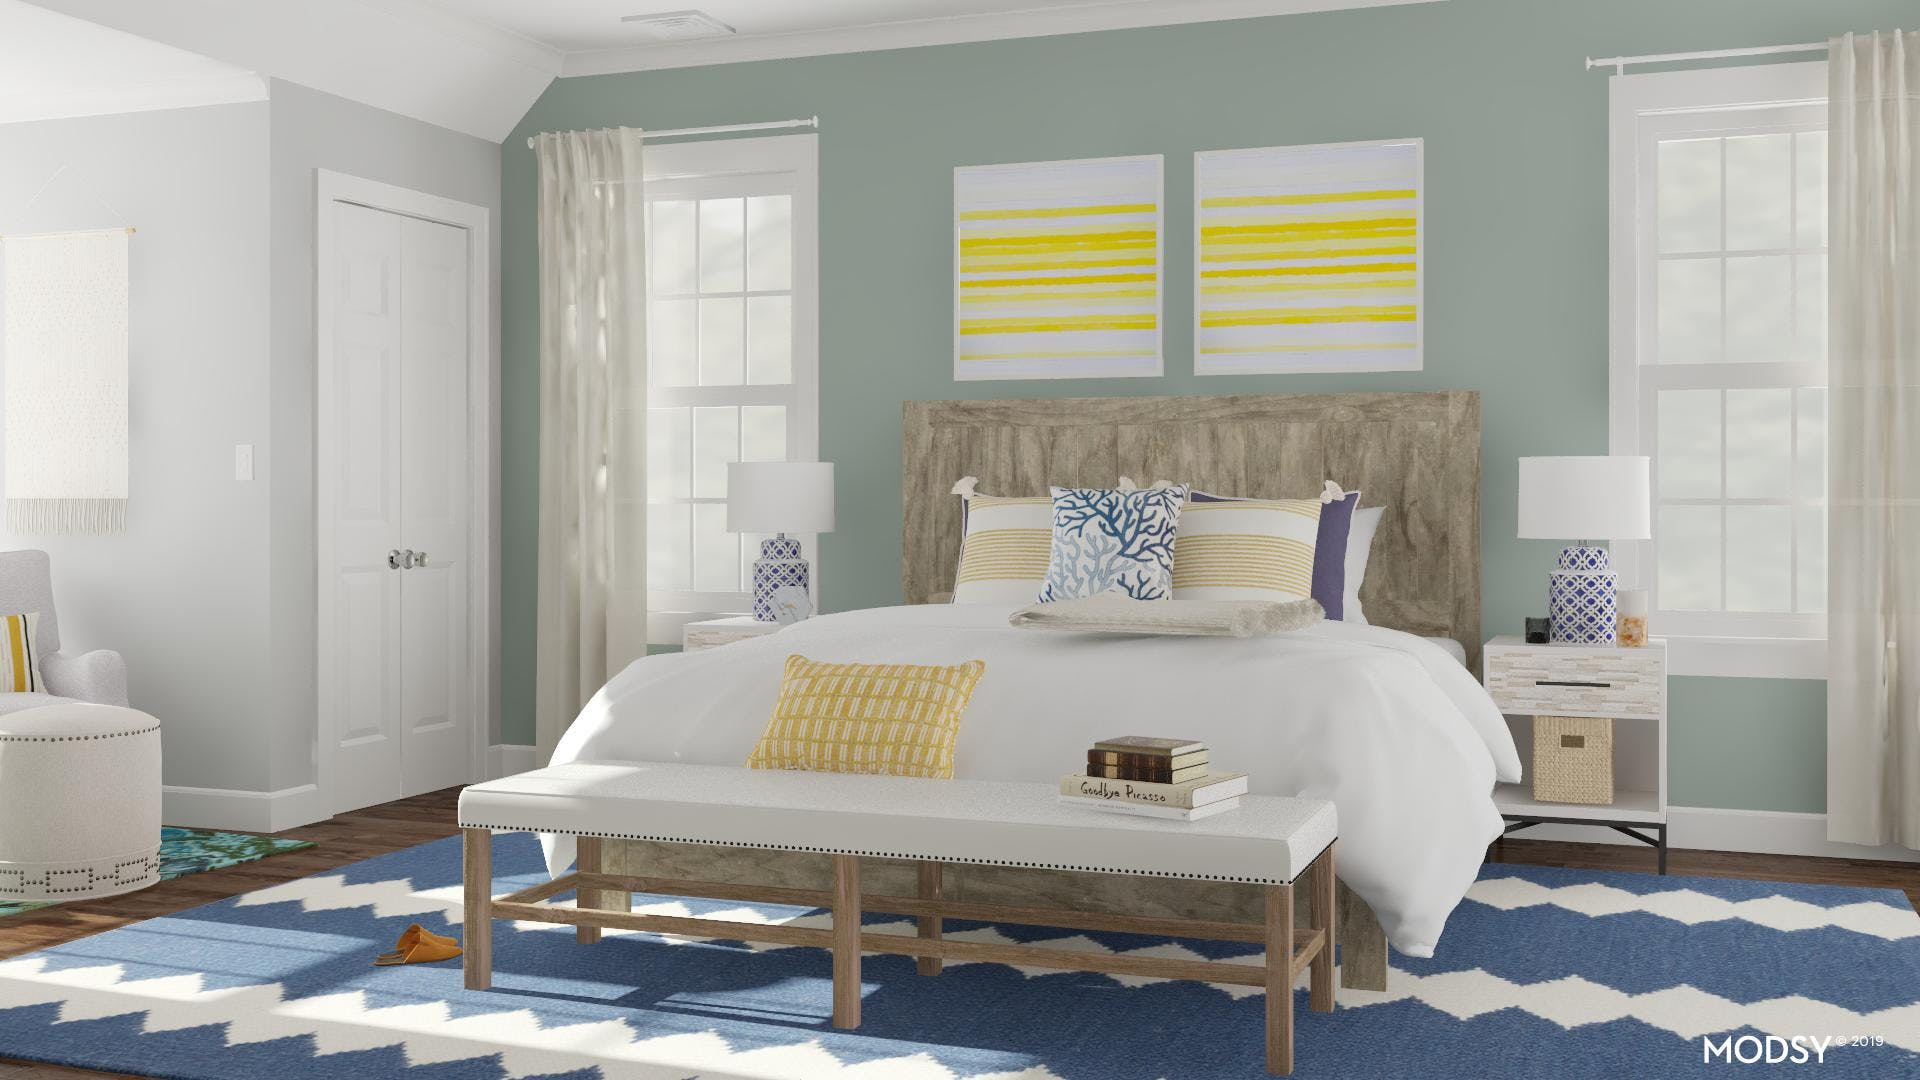 A Bright Coastal Room